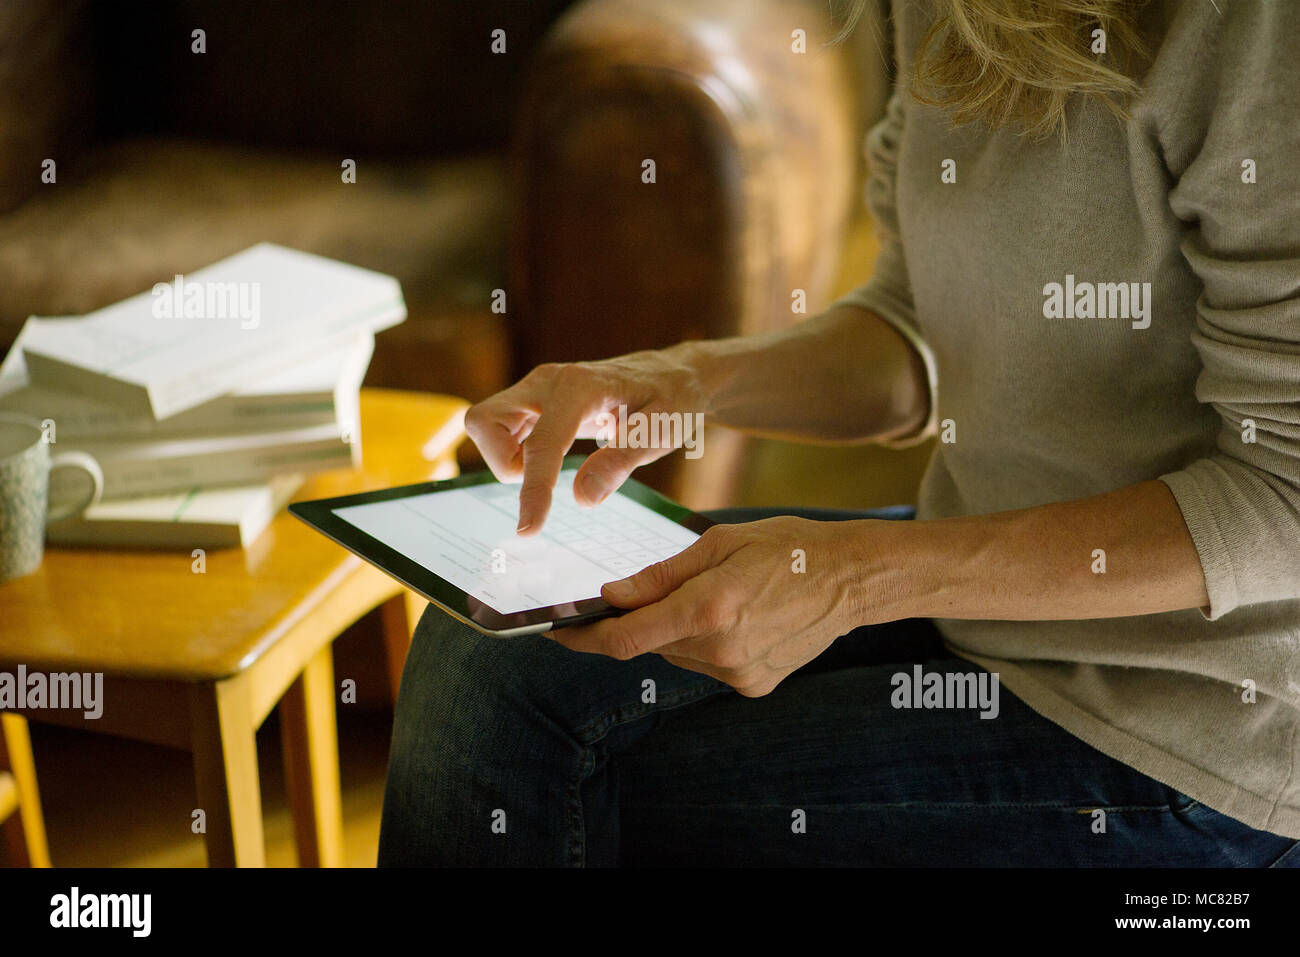 Woman using digital tablet at home - Stock Image